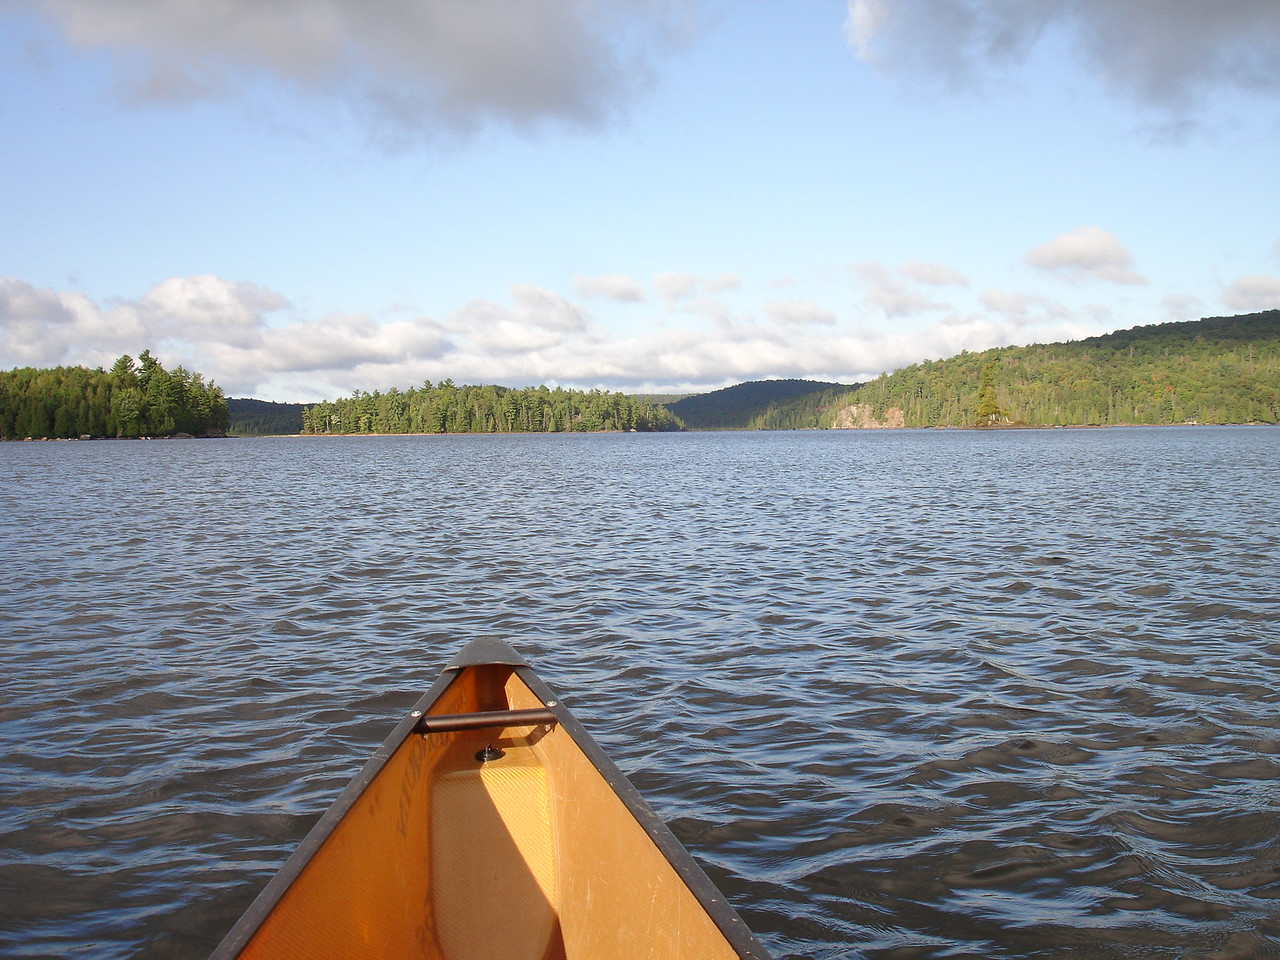 Next morning, heading south past those islands toward Pen Lake